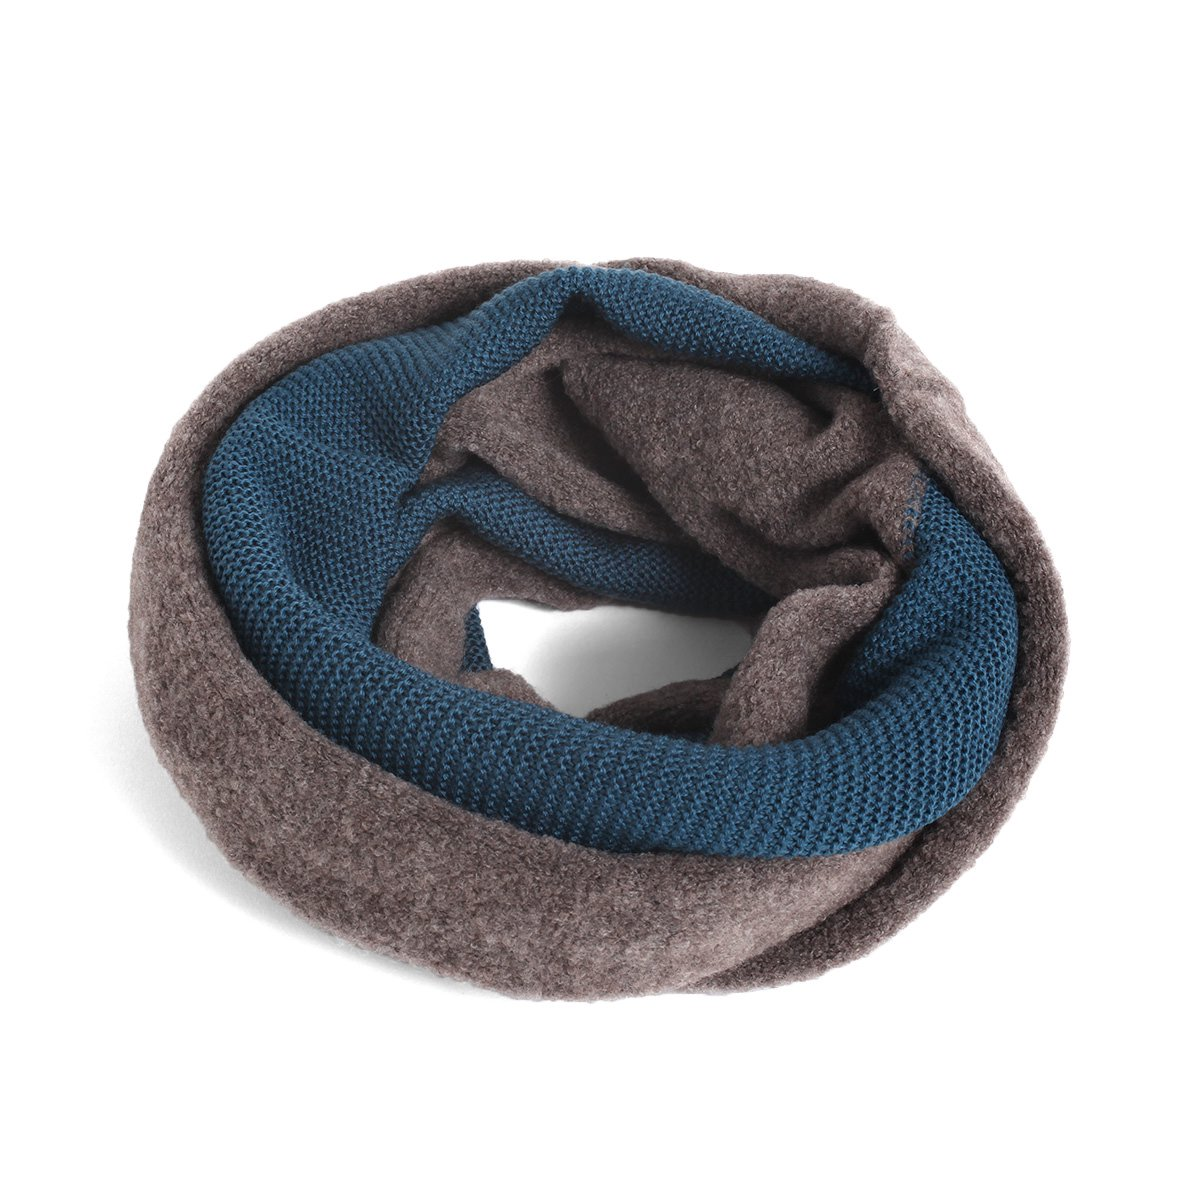 BOUCLE×WOOL TWIST NECKWARMER 詳細画像3